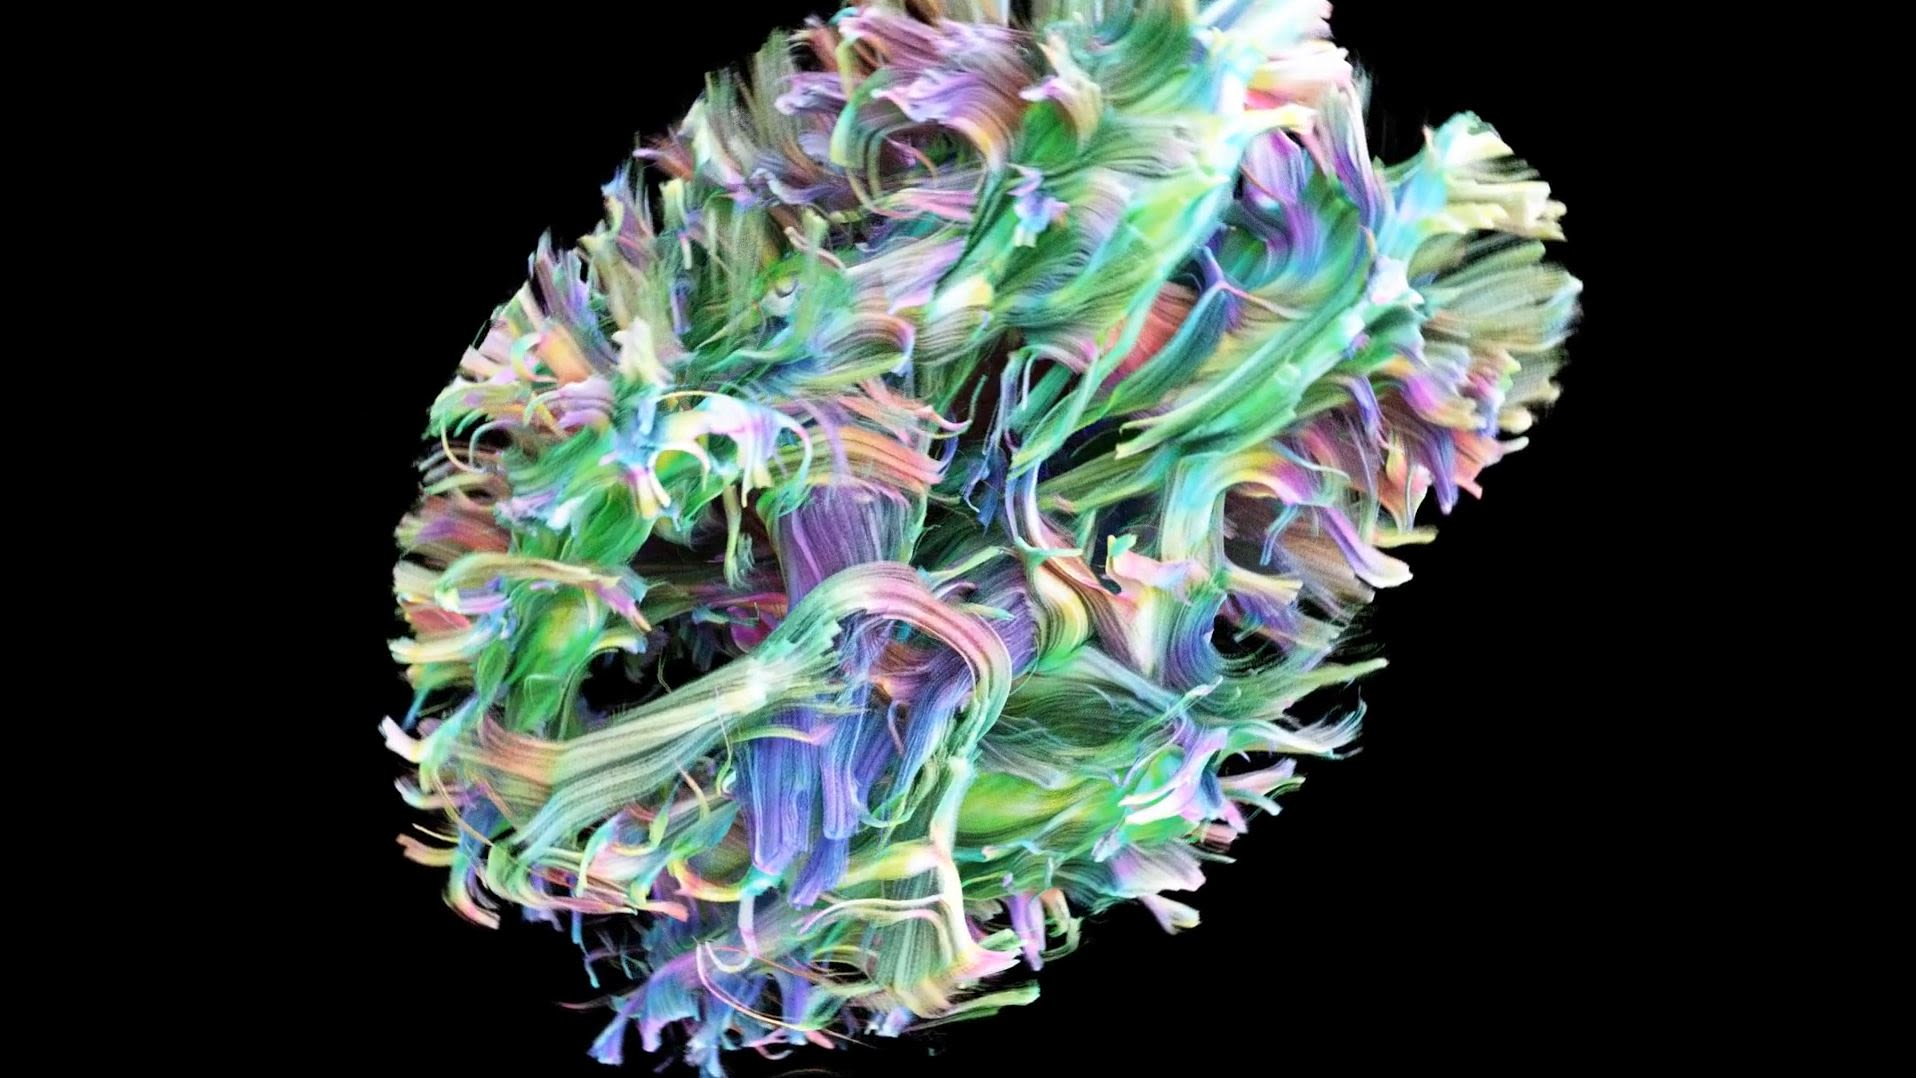 Visualisation showing the stringy microstructure of the brain.